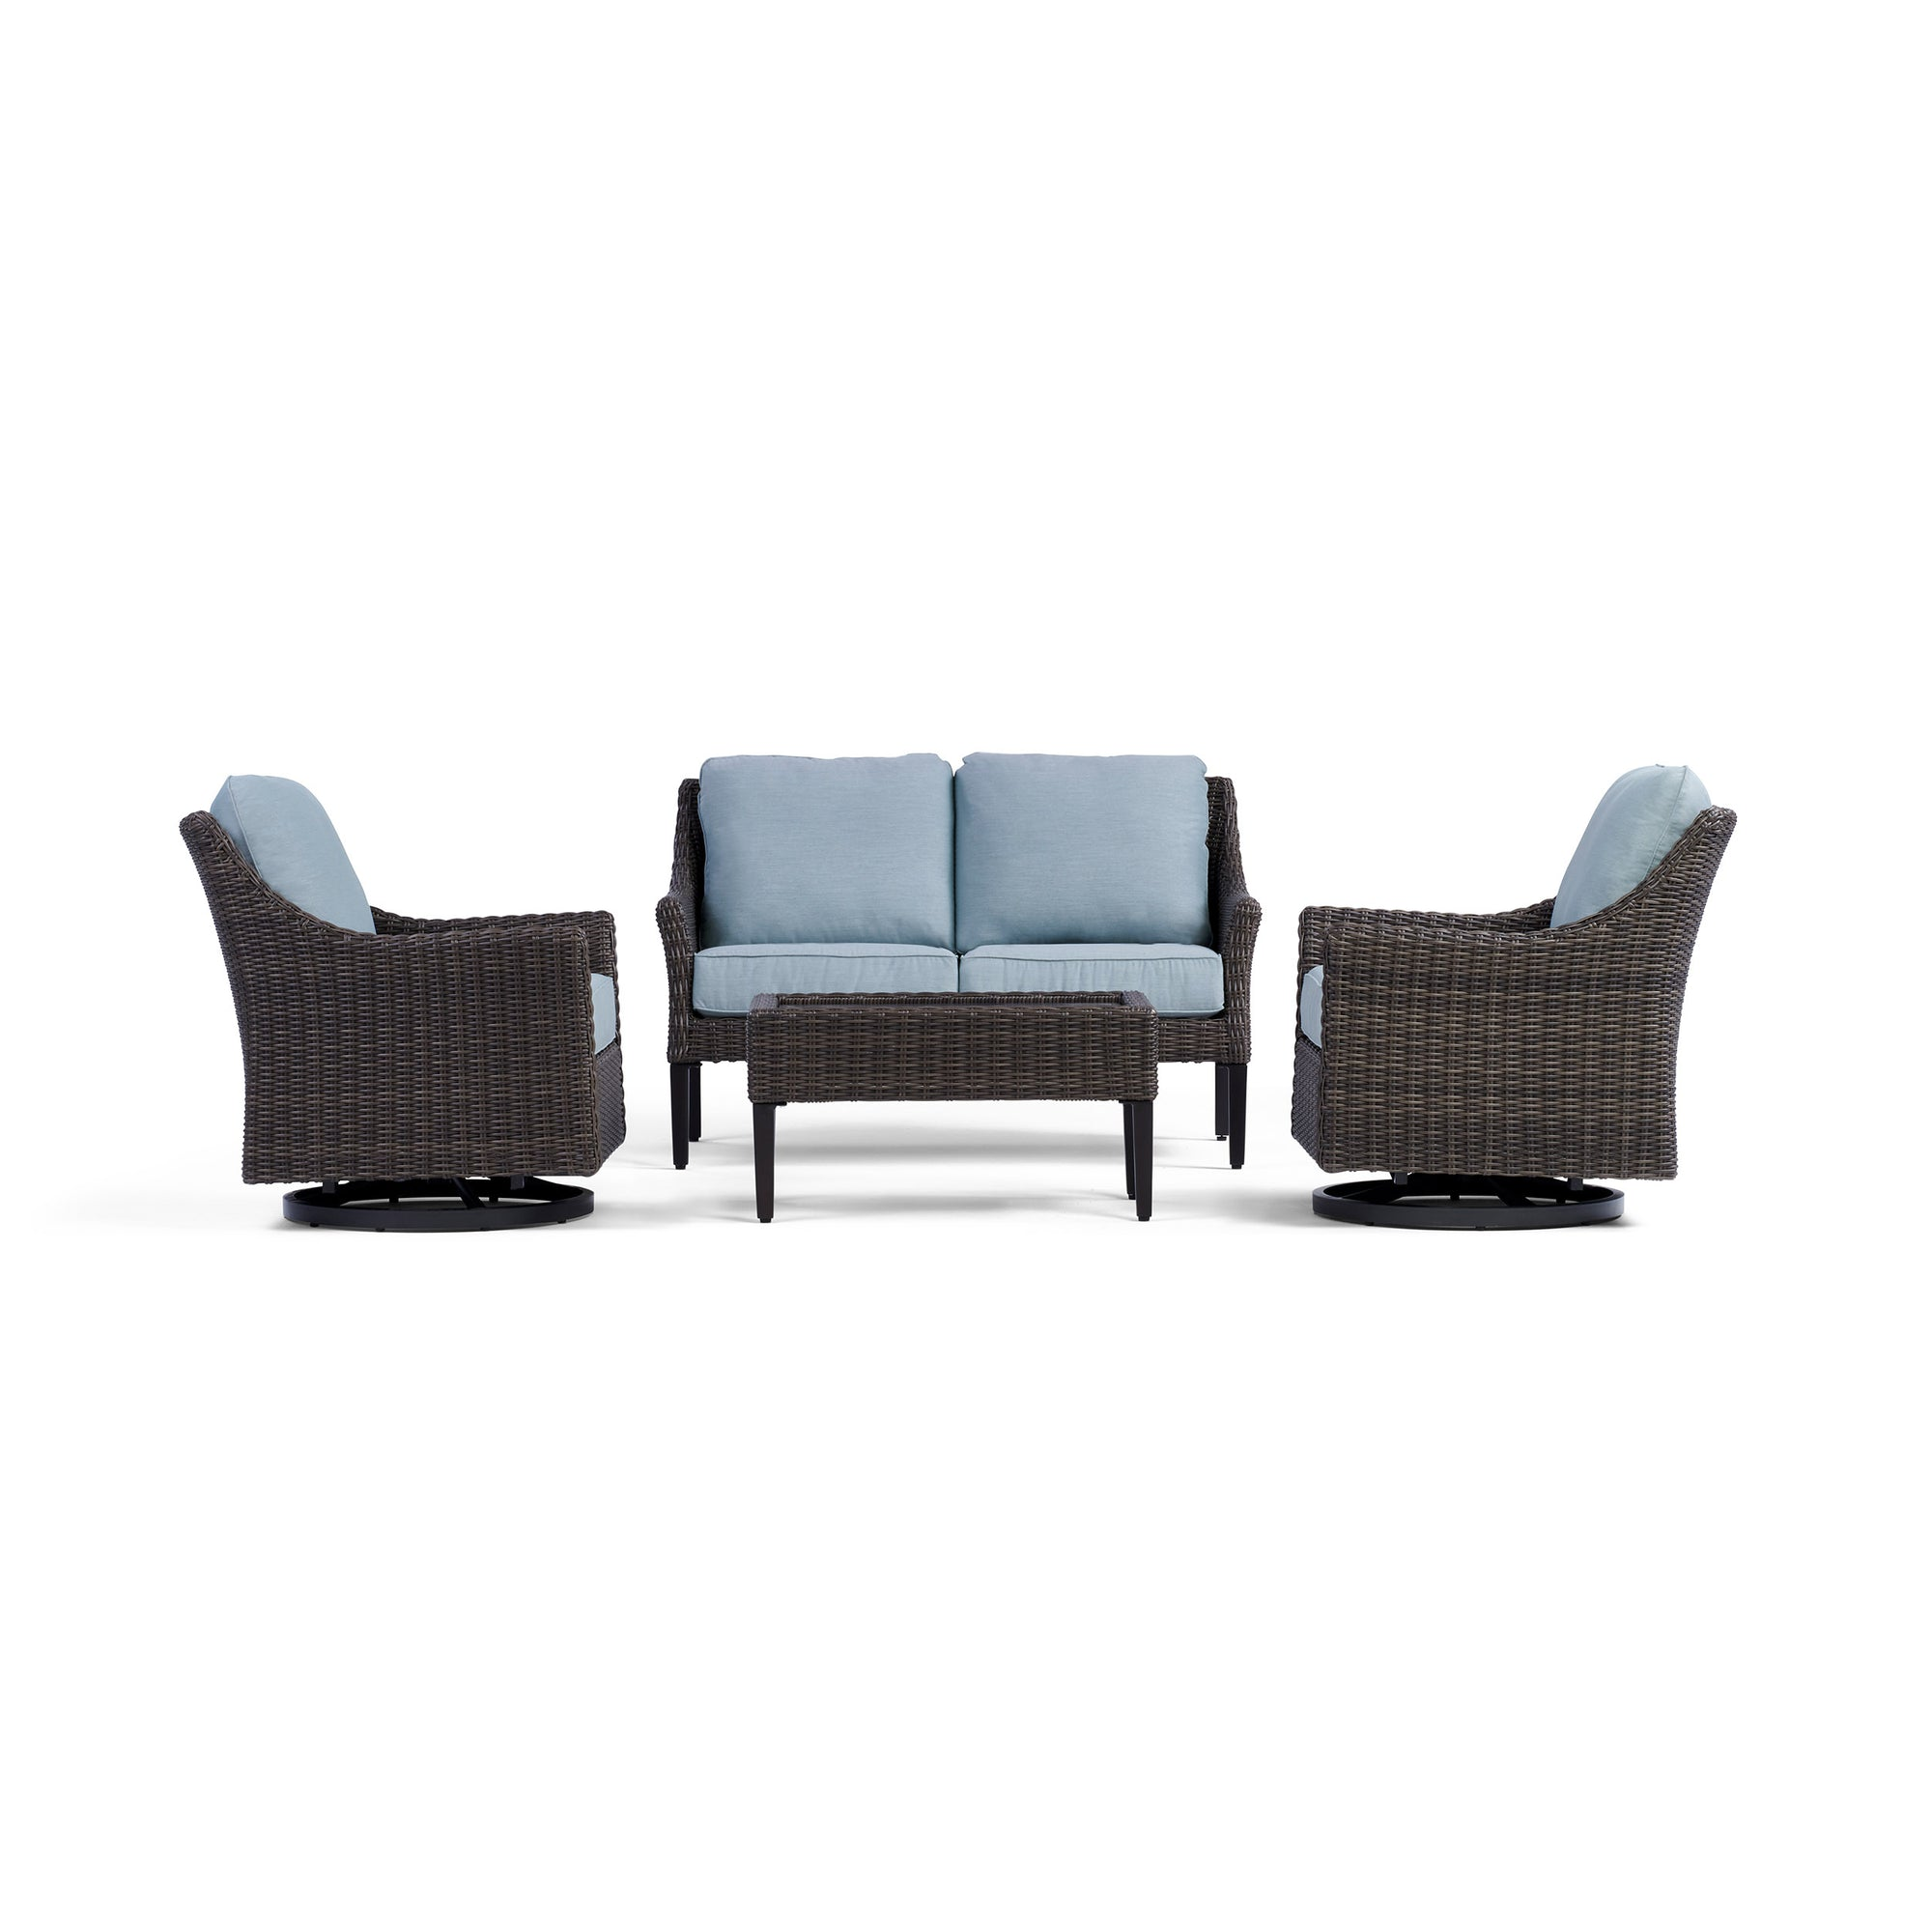 living image barbara product leon click espresso to room item loveseat change loveseats furniture s